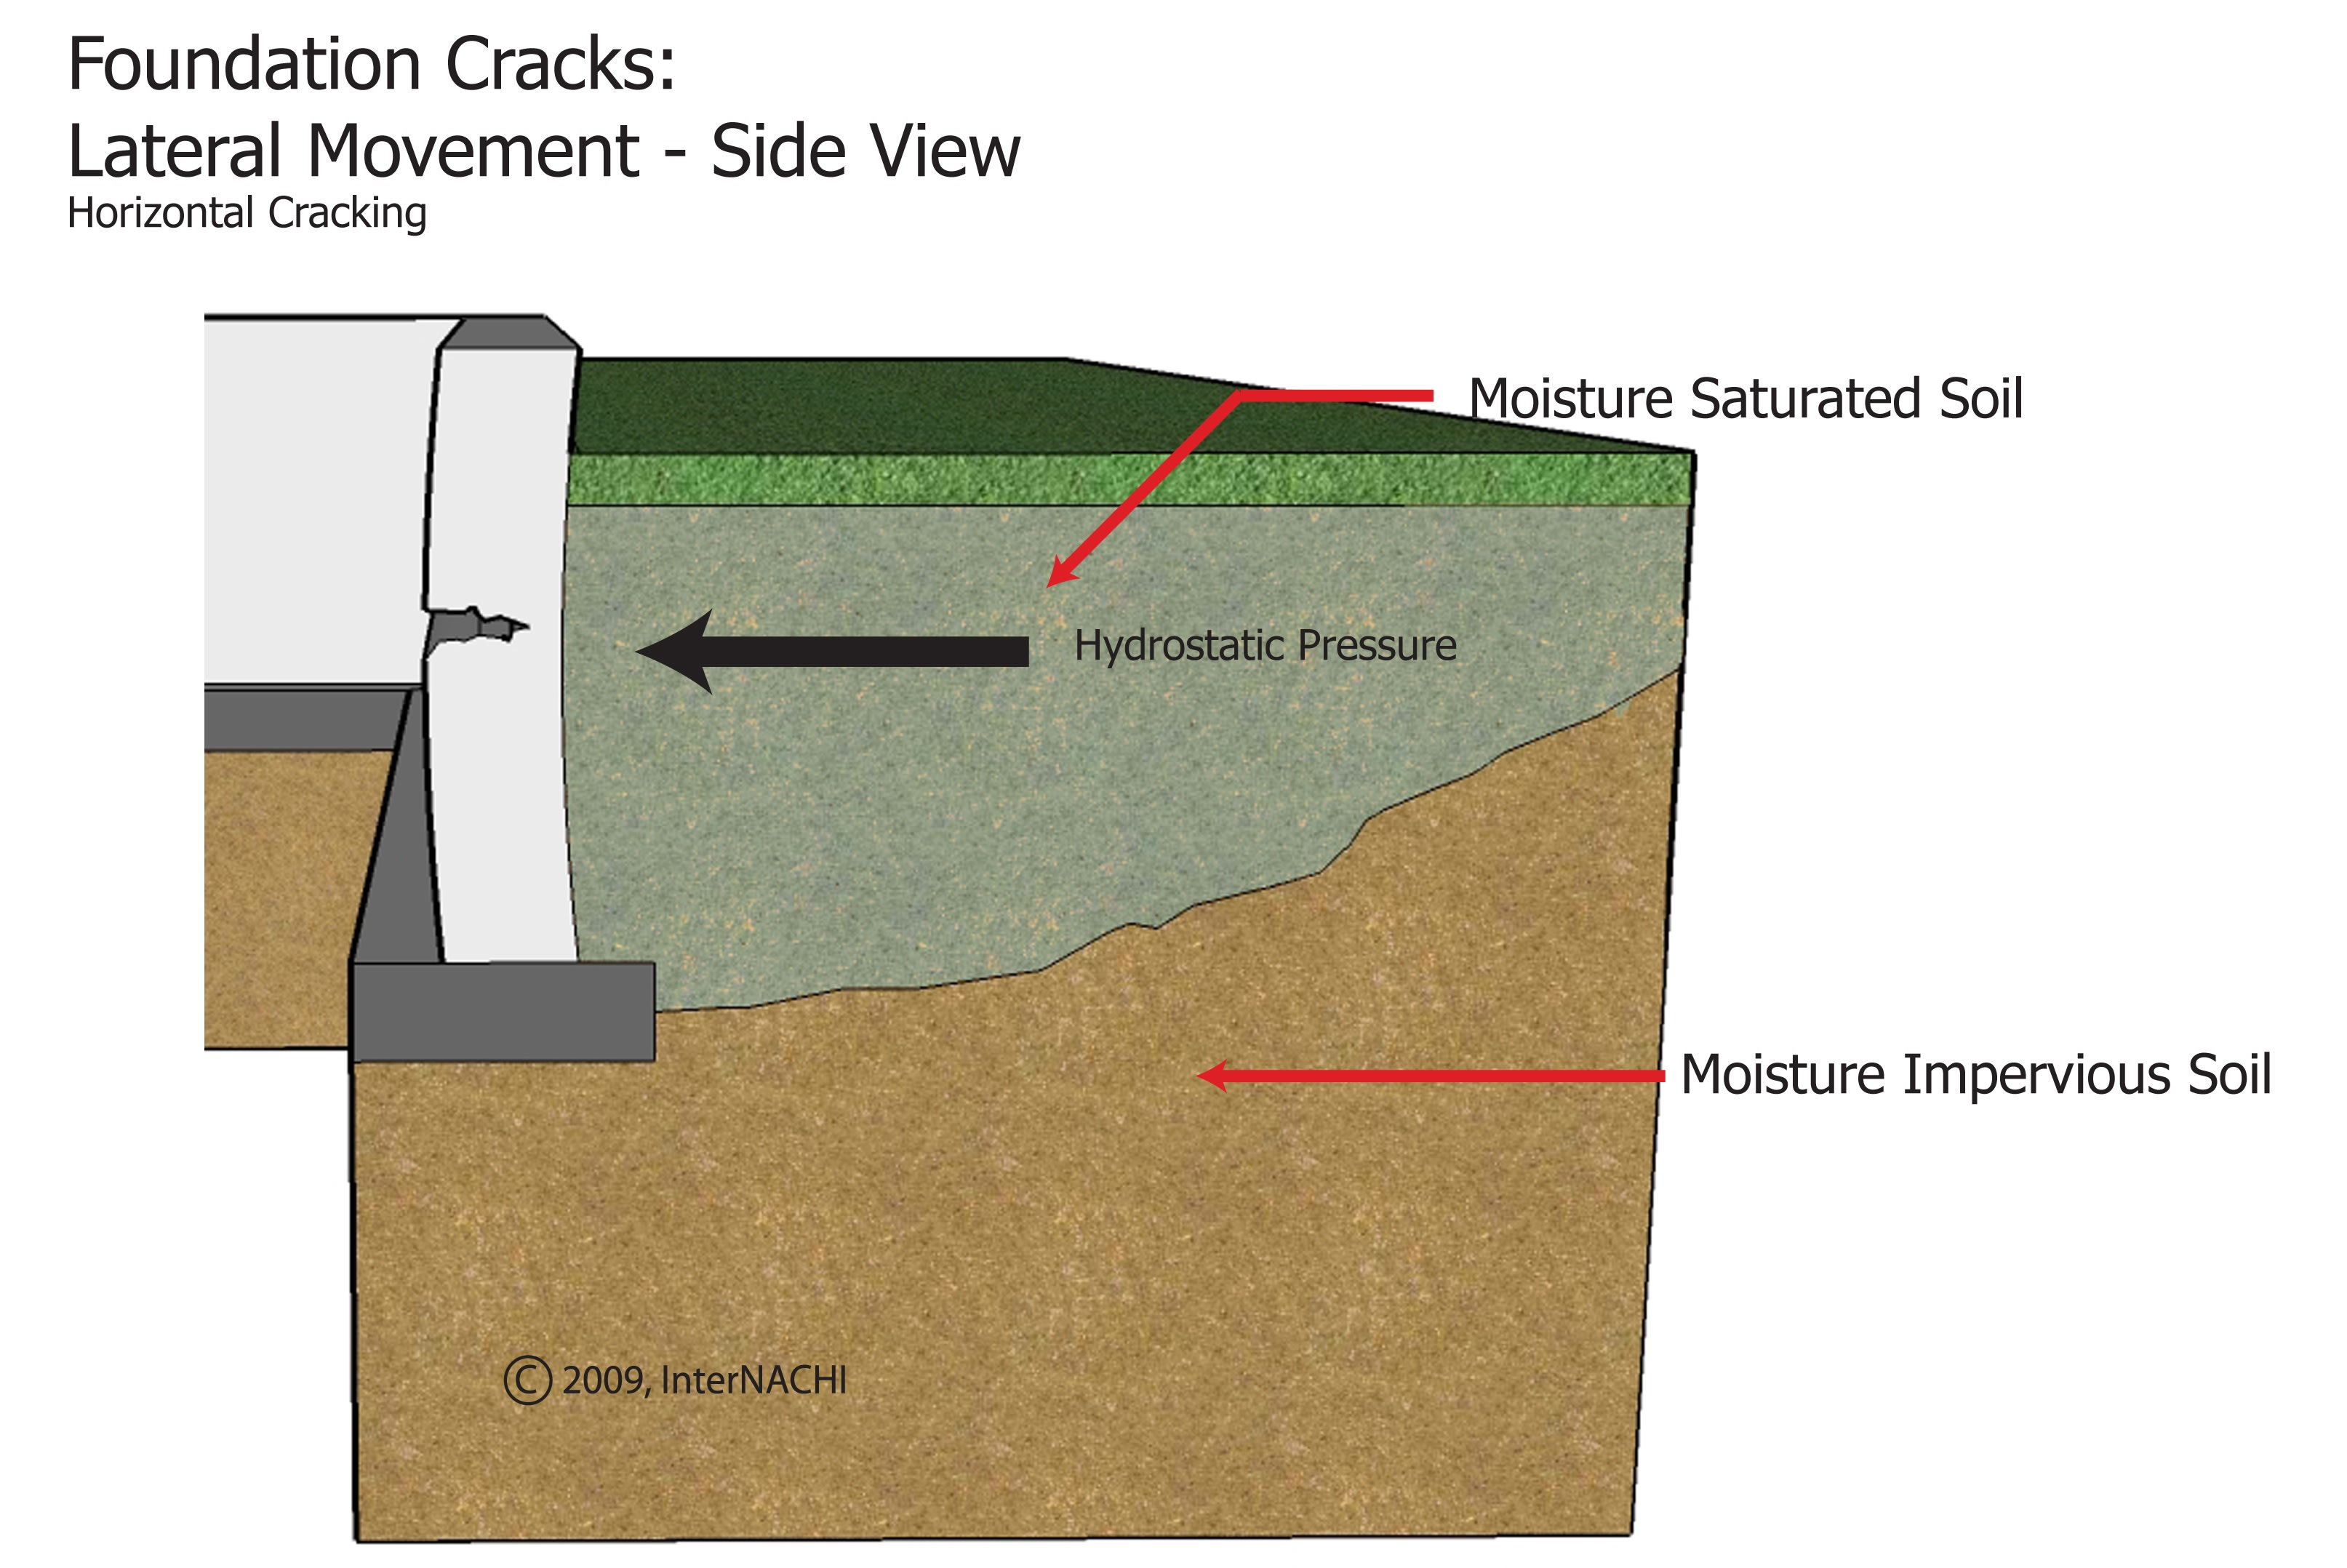 Foundation cracks may develop when there is moisture saturated soil pushing on the exterior face of the foundation wall. The hydrostatic pressure forces the wall to bend inward creating a crack and opening in the foundation wall. This crack is usually horizontal, open more than hairline, and shows signs of water intrusion.  Hydrostatic pressure refers to the pressures caused by water pushing against slabs and foundations, particularly underground concrete block or poured concrete walls of foundation and crawlspaces.